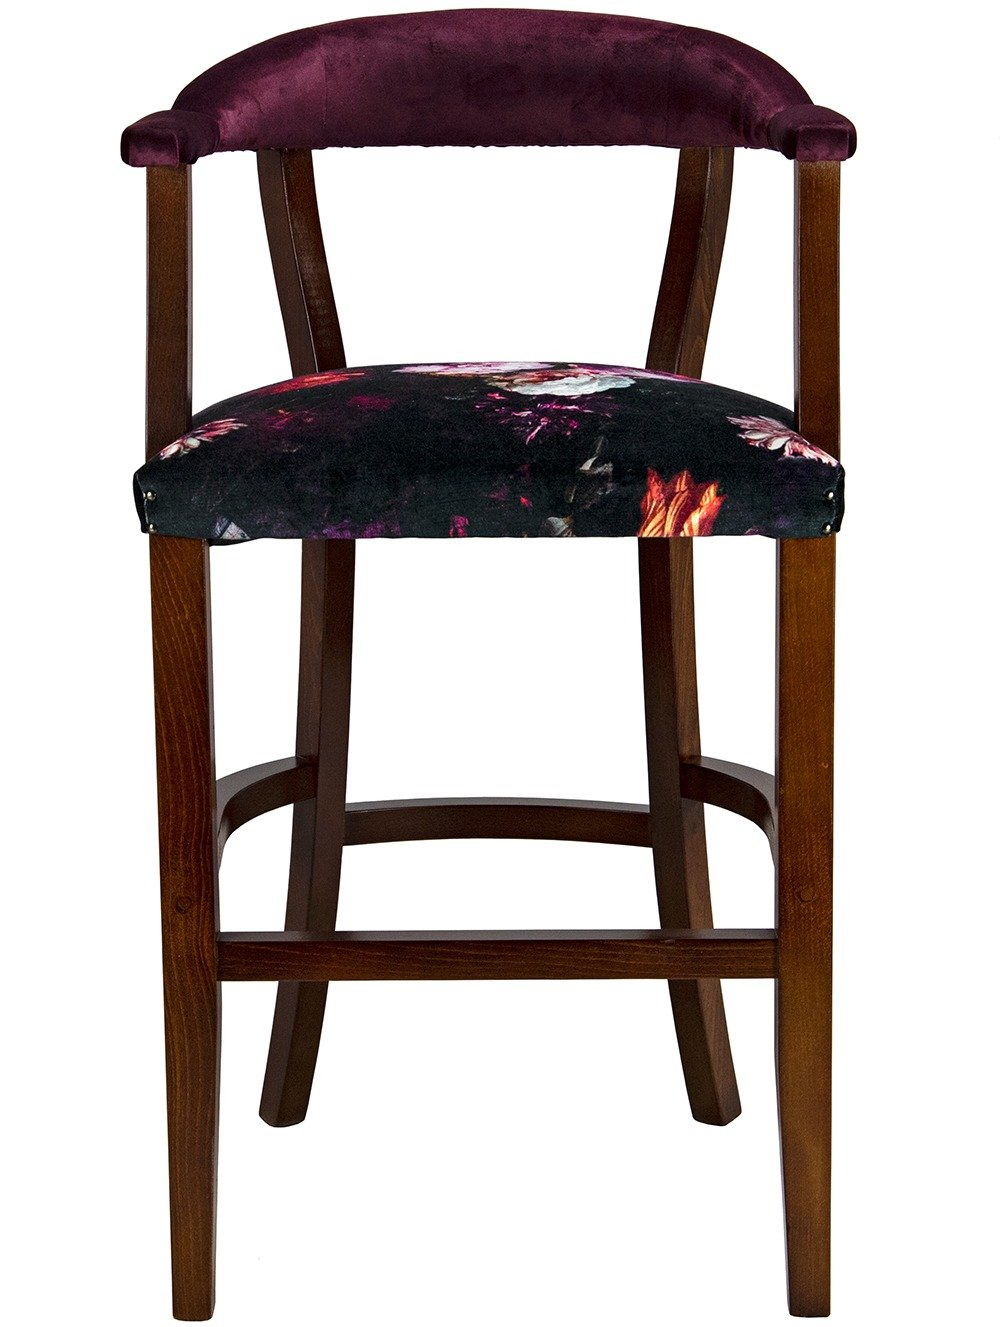 Court High Stool with velvet back from the front